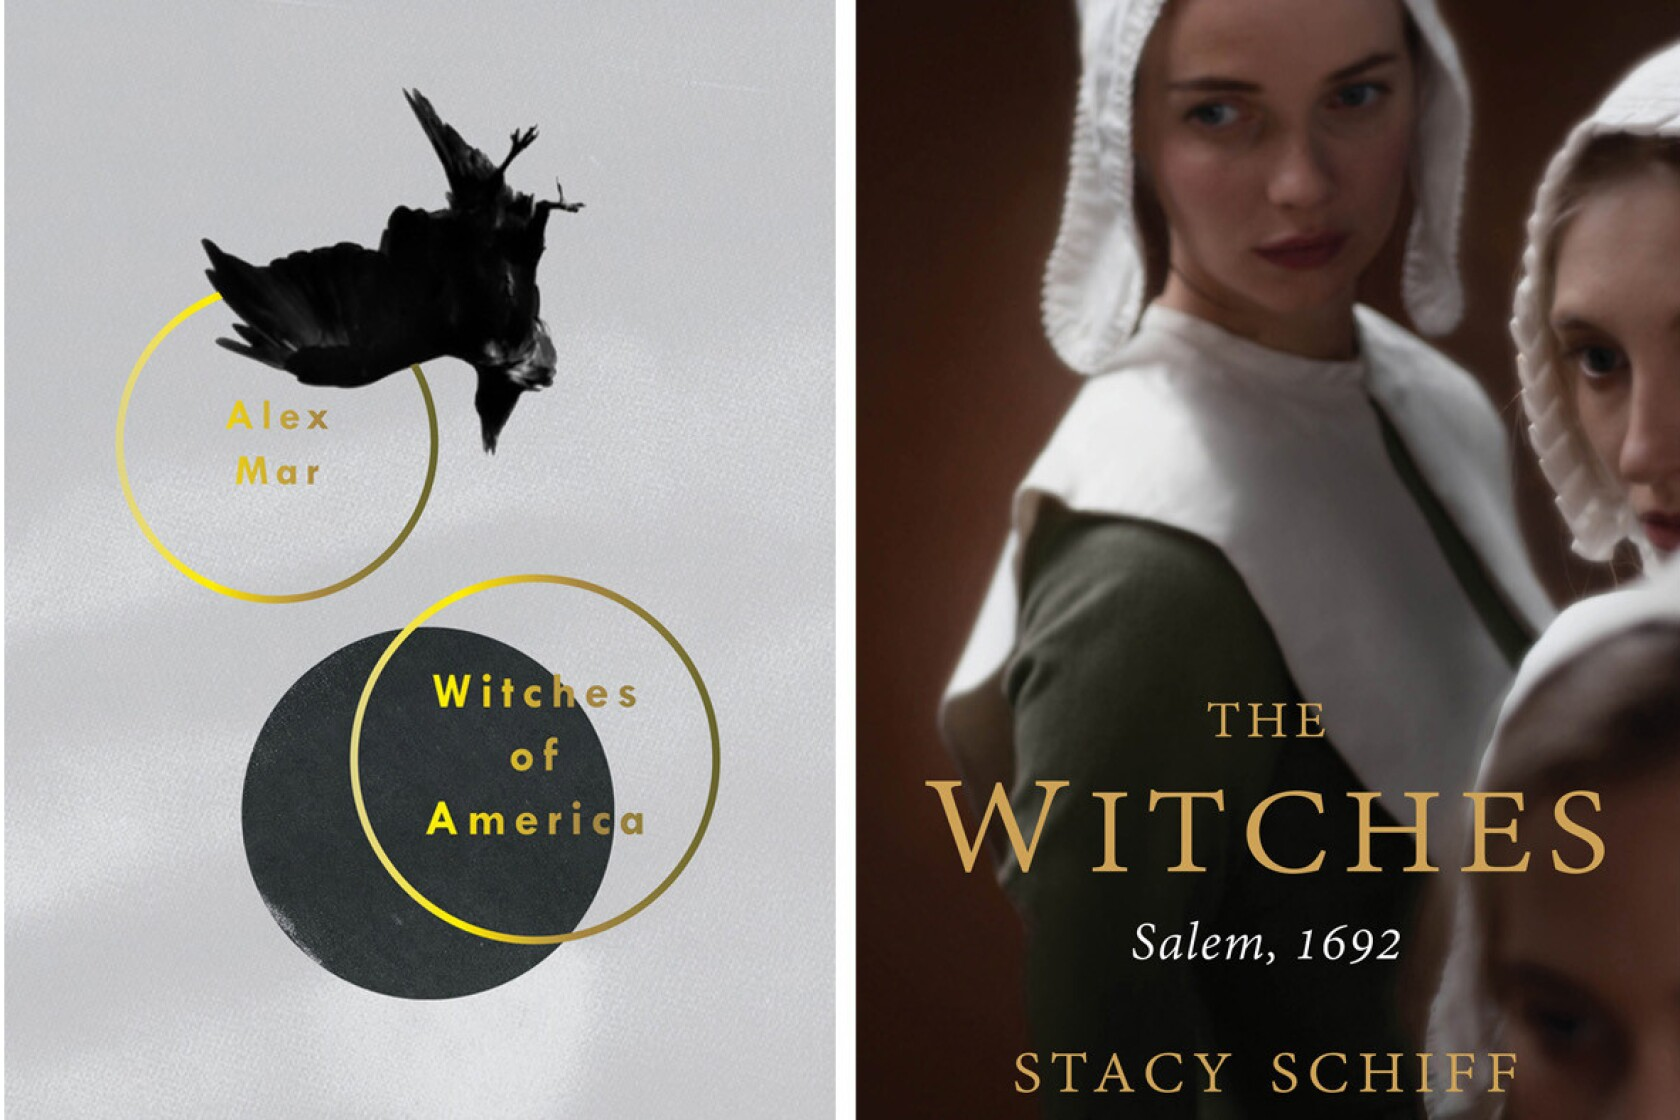 Review: The 'Witches' in two illuminating new books are like night